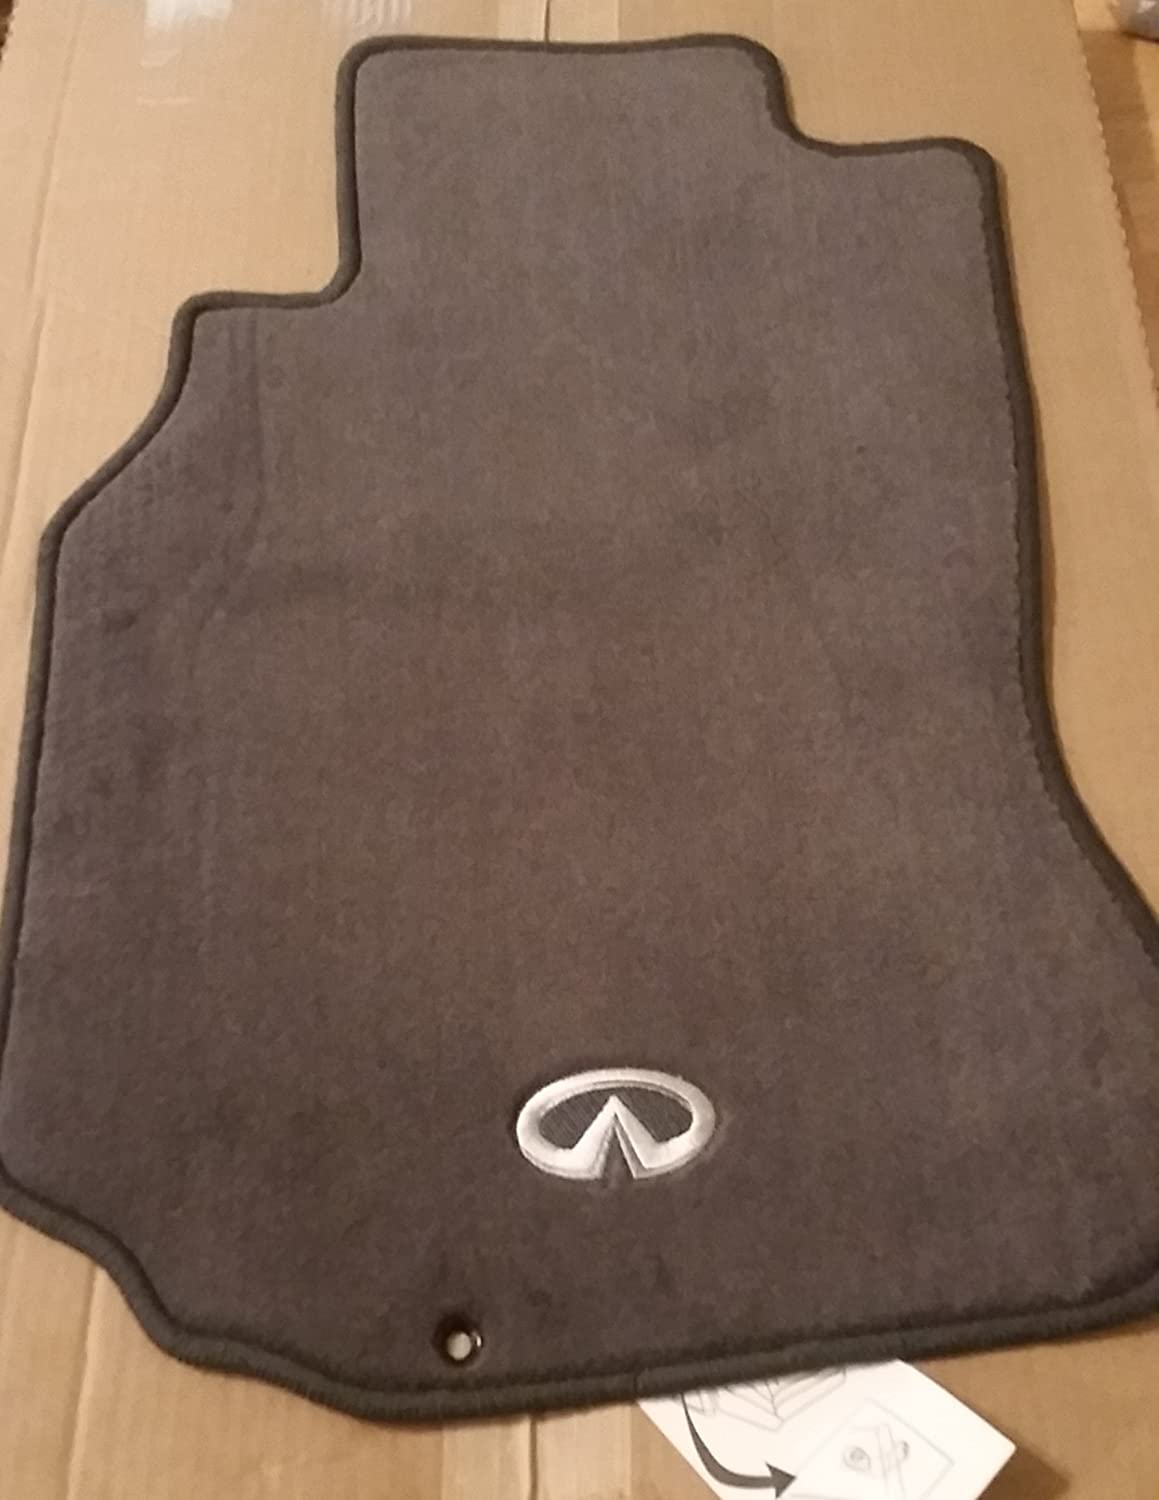 infiniti automobiles item special liners infinity floor in car styling for zhaoyanhua from mats